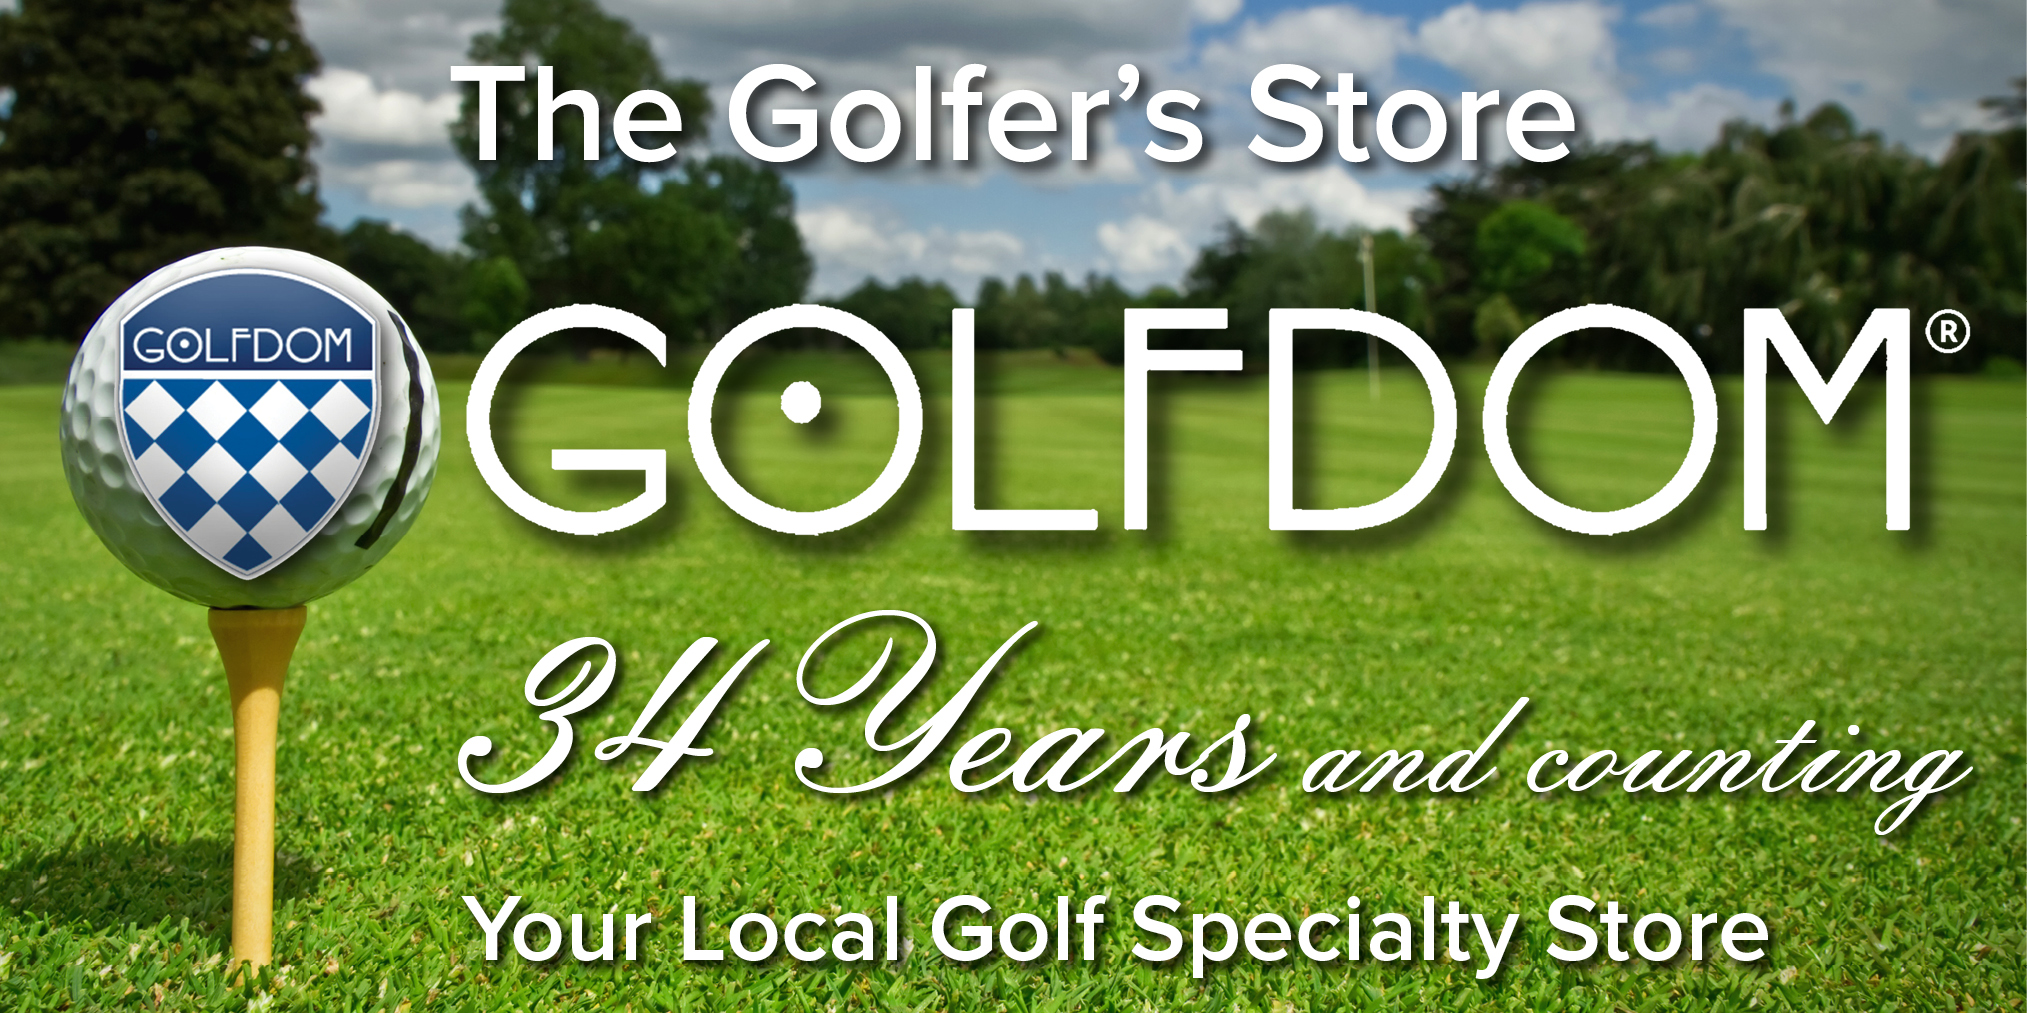 Golfdom The Golfer's Store